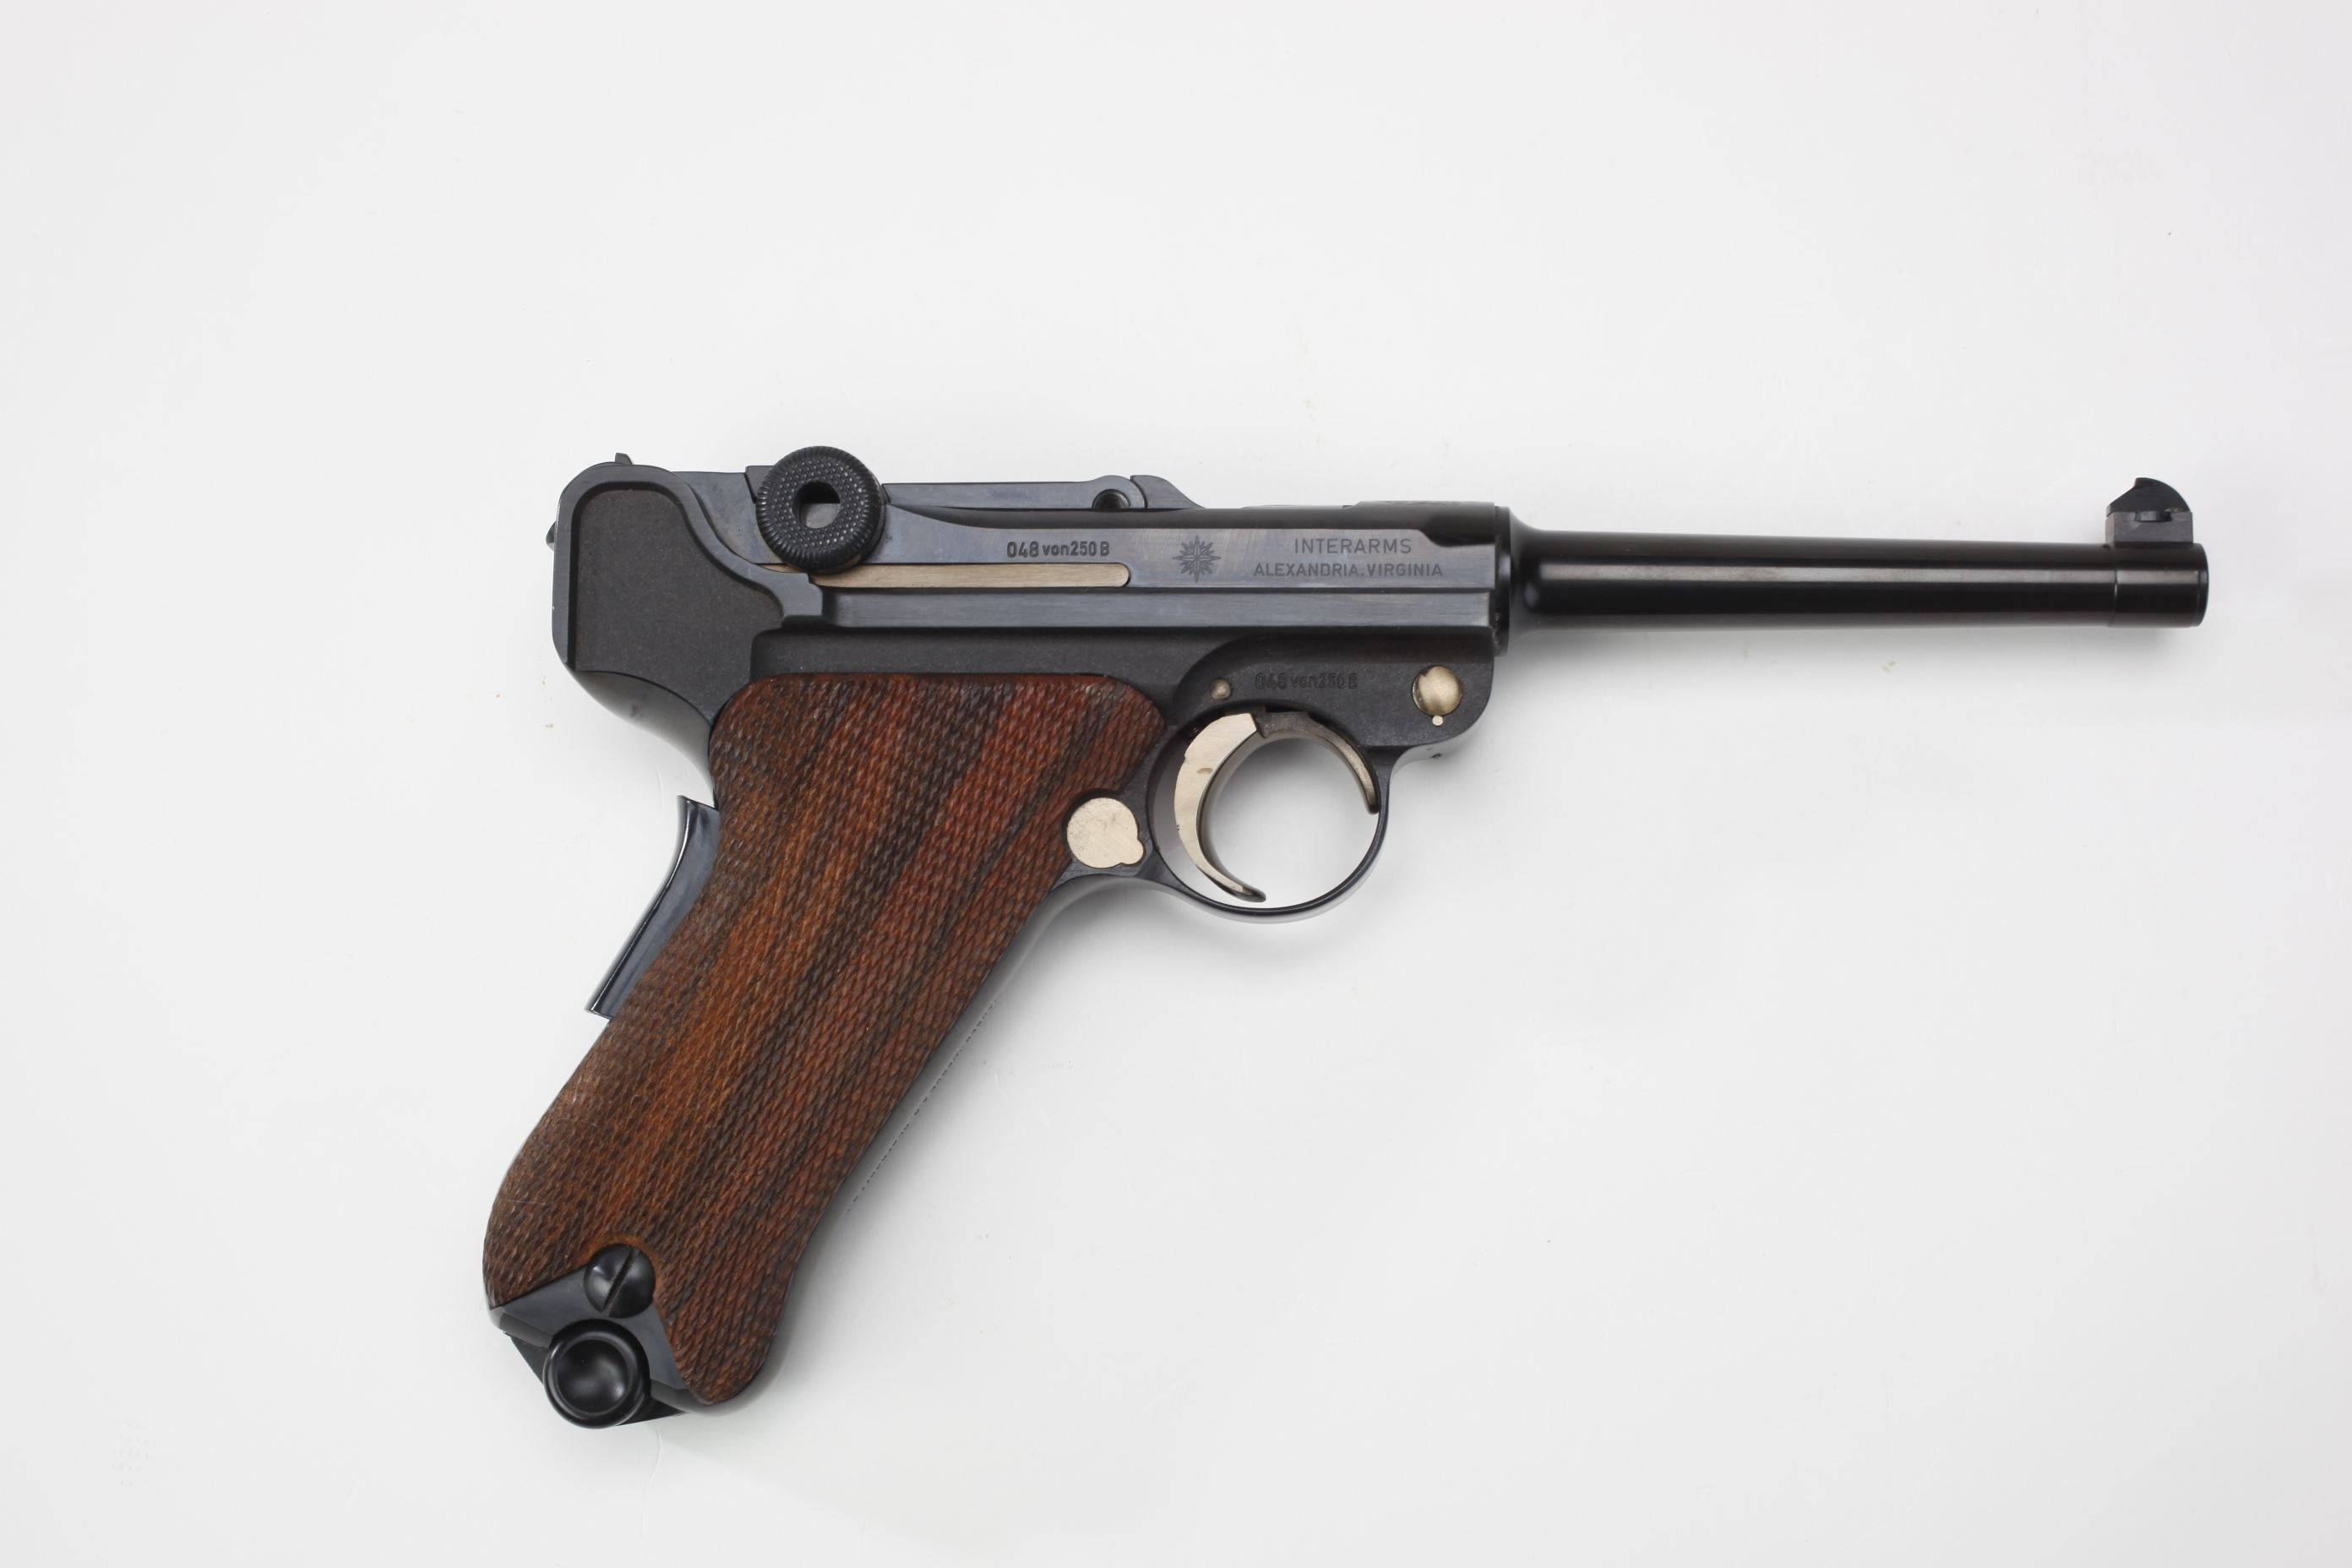 Mauser/Interarms Commemorative Luger Semi-Automatic Pistol